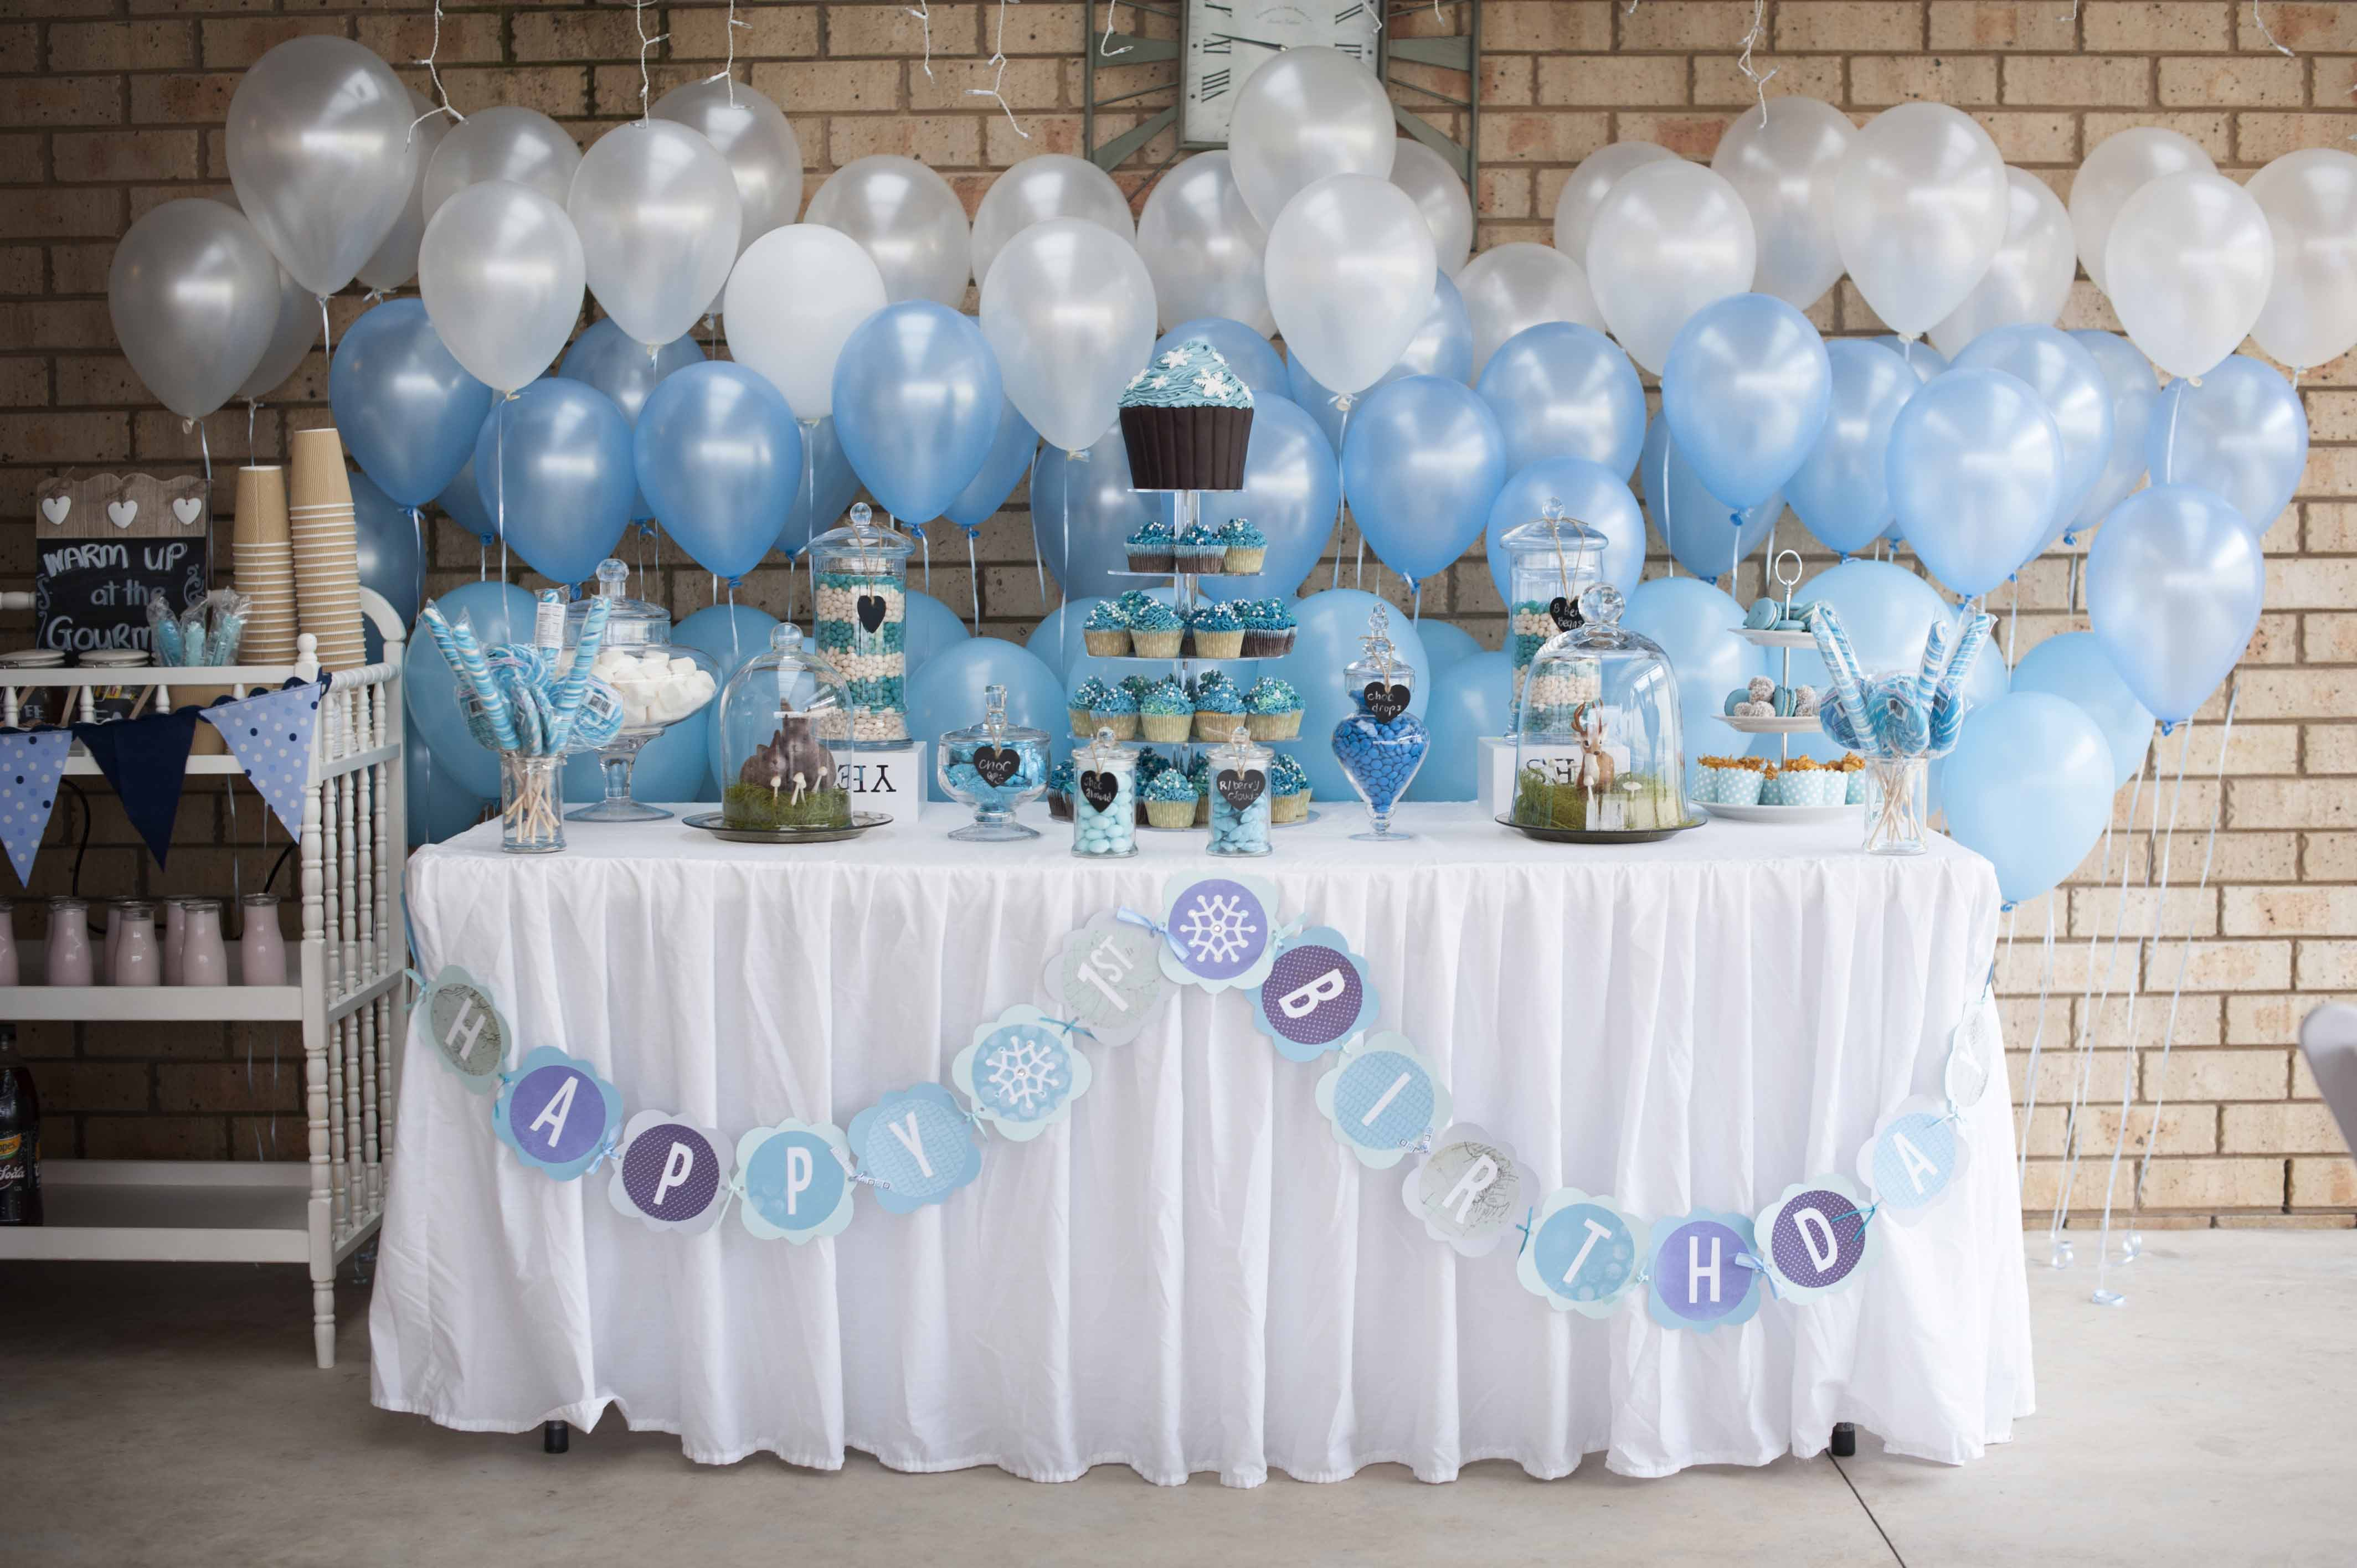 Ouwinter-wonderland-birthday-party-decorations-winter-wonderland-party-ideas-interior-design-awesome-winter-wonderland-themed-decorations